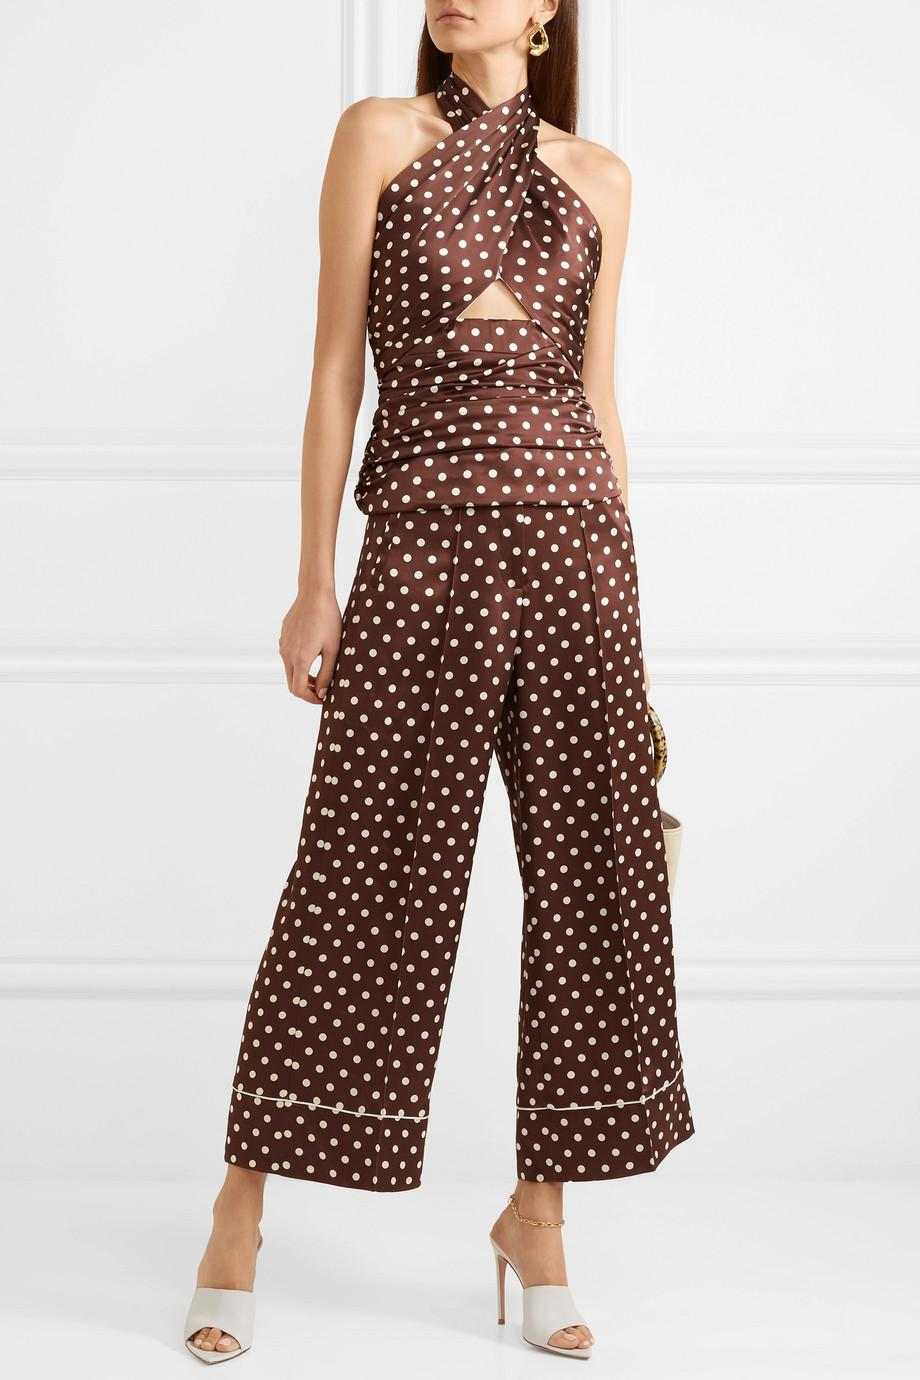 Desert Cropped Polka-dot Silk-satin Wide-leg Pants - Brown Racil NRLUQ